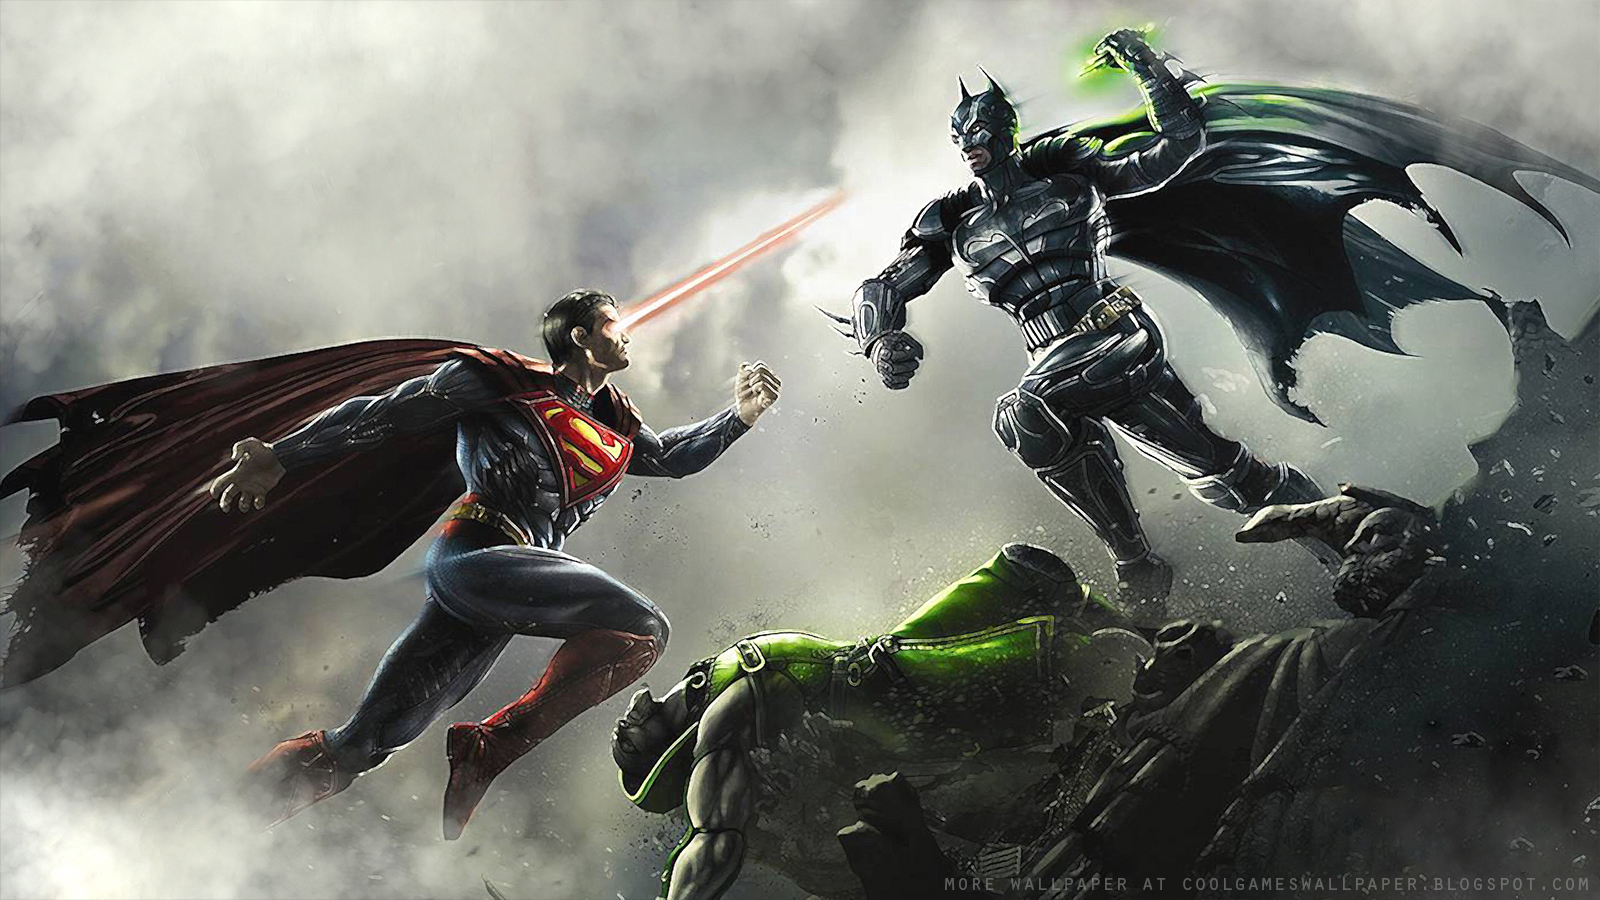 injustice: gods among us wallpapers - cool games wallpaper